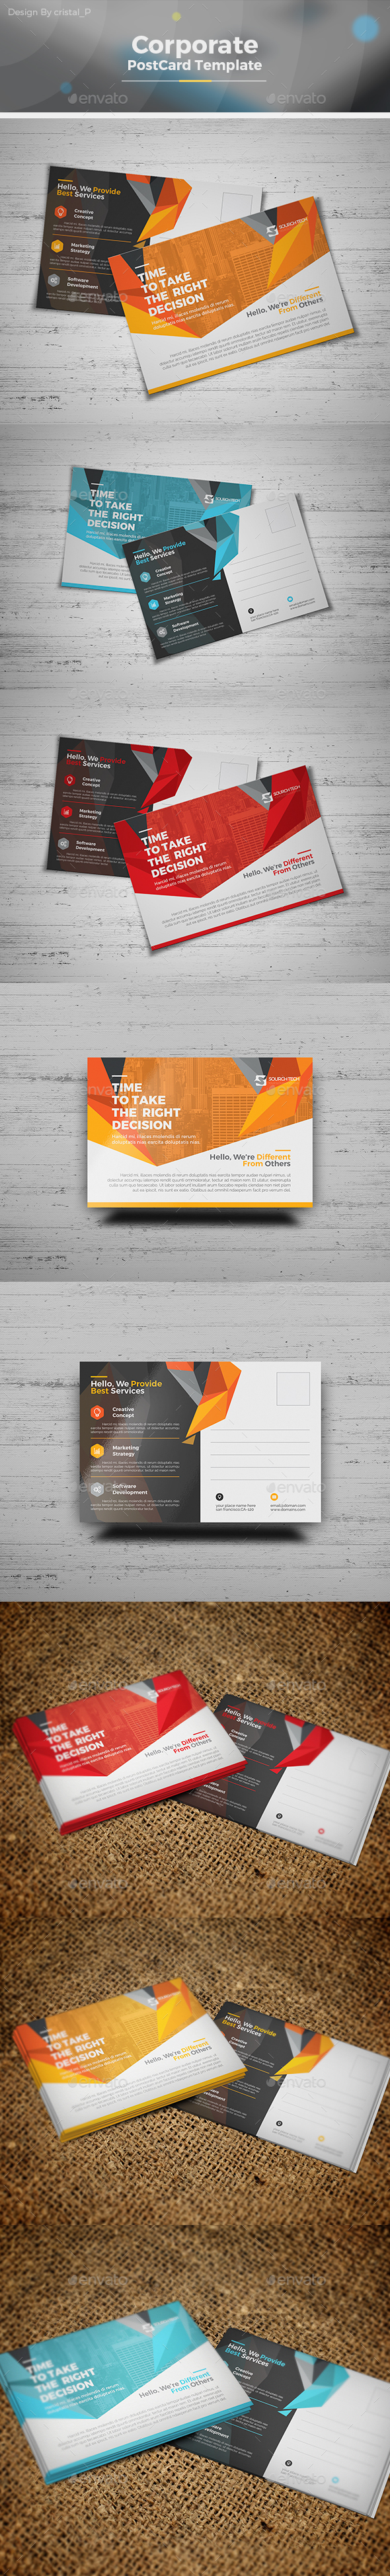 Corporate Business Postcard - Cards & Invites Print Templates